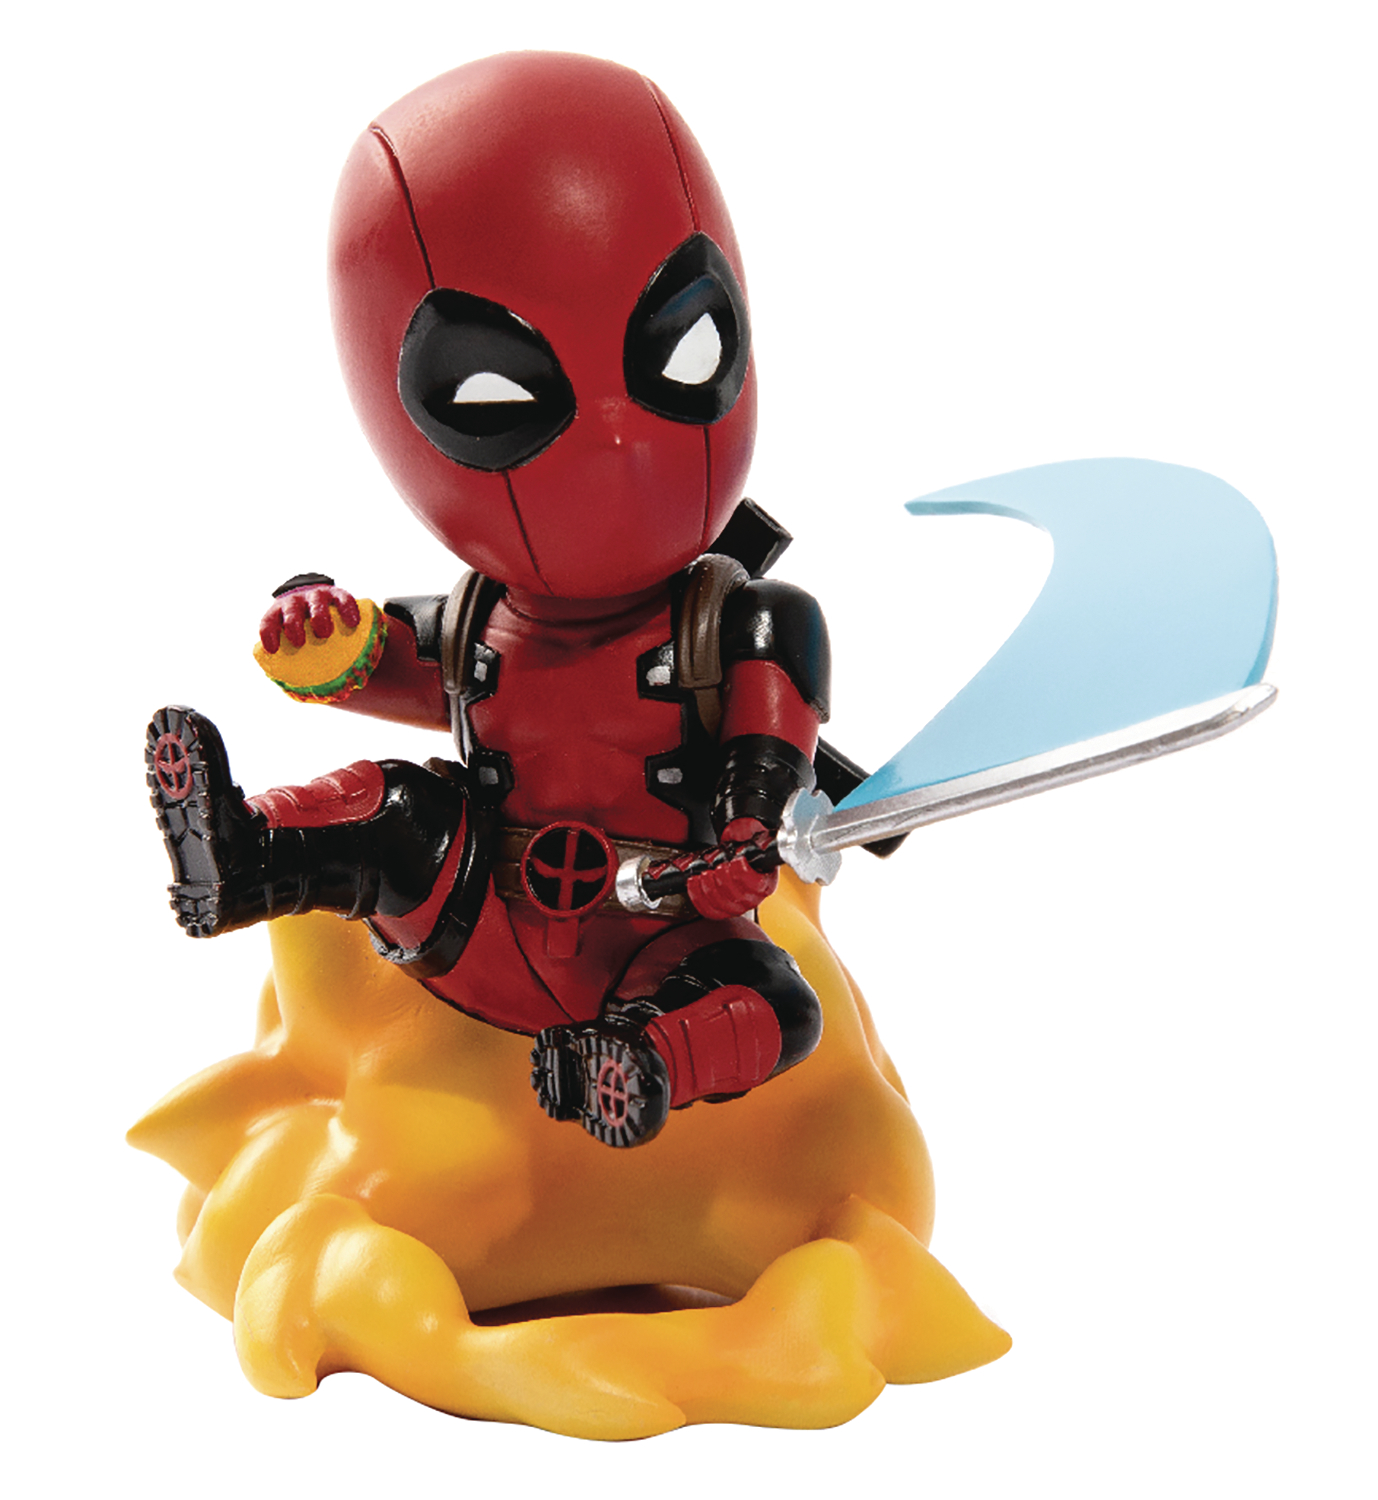 MARVEL COMICS MEA-004 DEADPOOL AMBUSH PX FIG